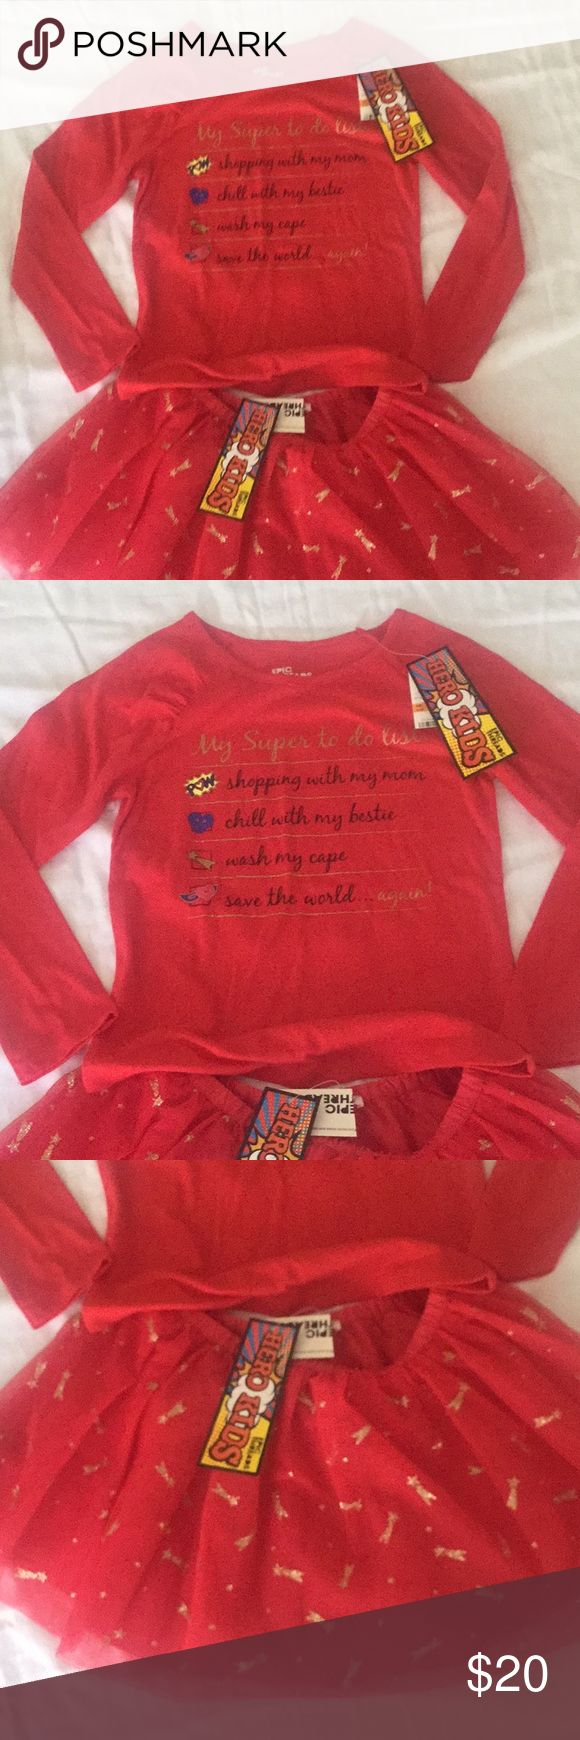 Epic Threads girls 2 pc Sz 6x NWT Epic Threads Girls Size 6X For your little supergirl! New with tags Kids love to wear these Hero Kids clothes The adorable skirt is a tutu style with gold glitter - called lollipop The top has sayings of a super girl list Epic Threads - Hero Kids Matching Sets